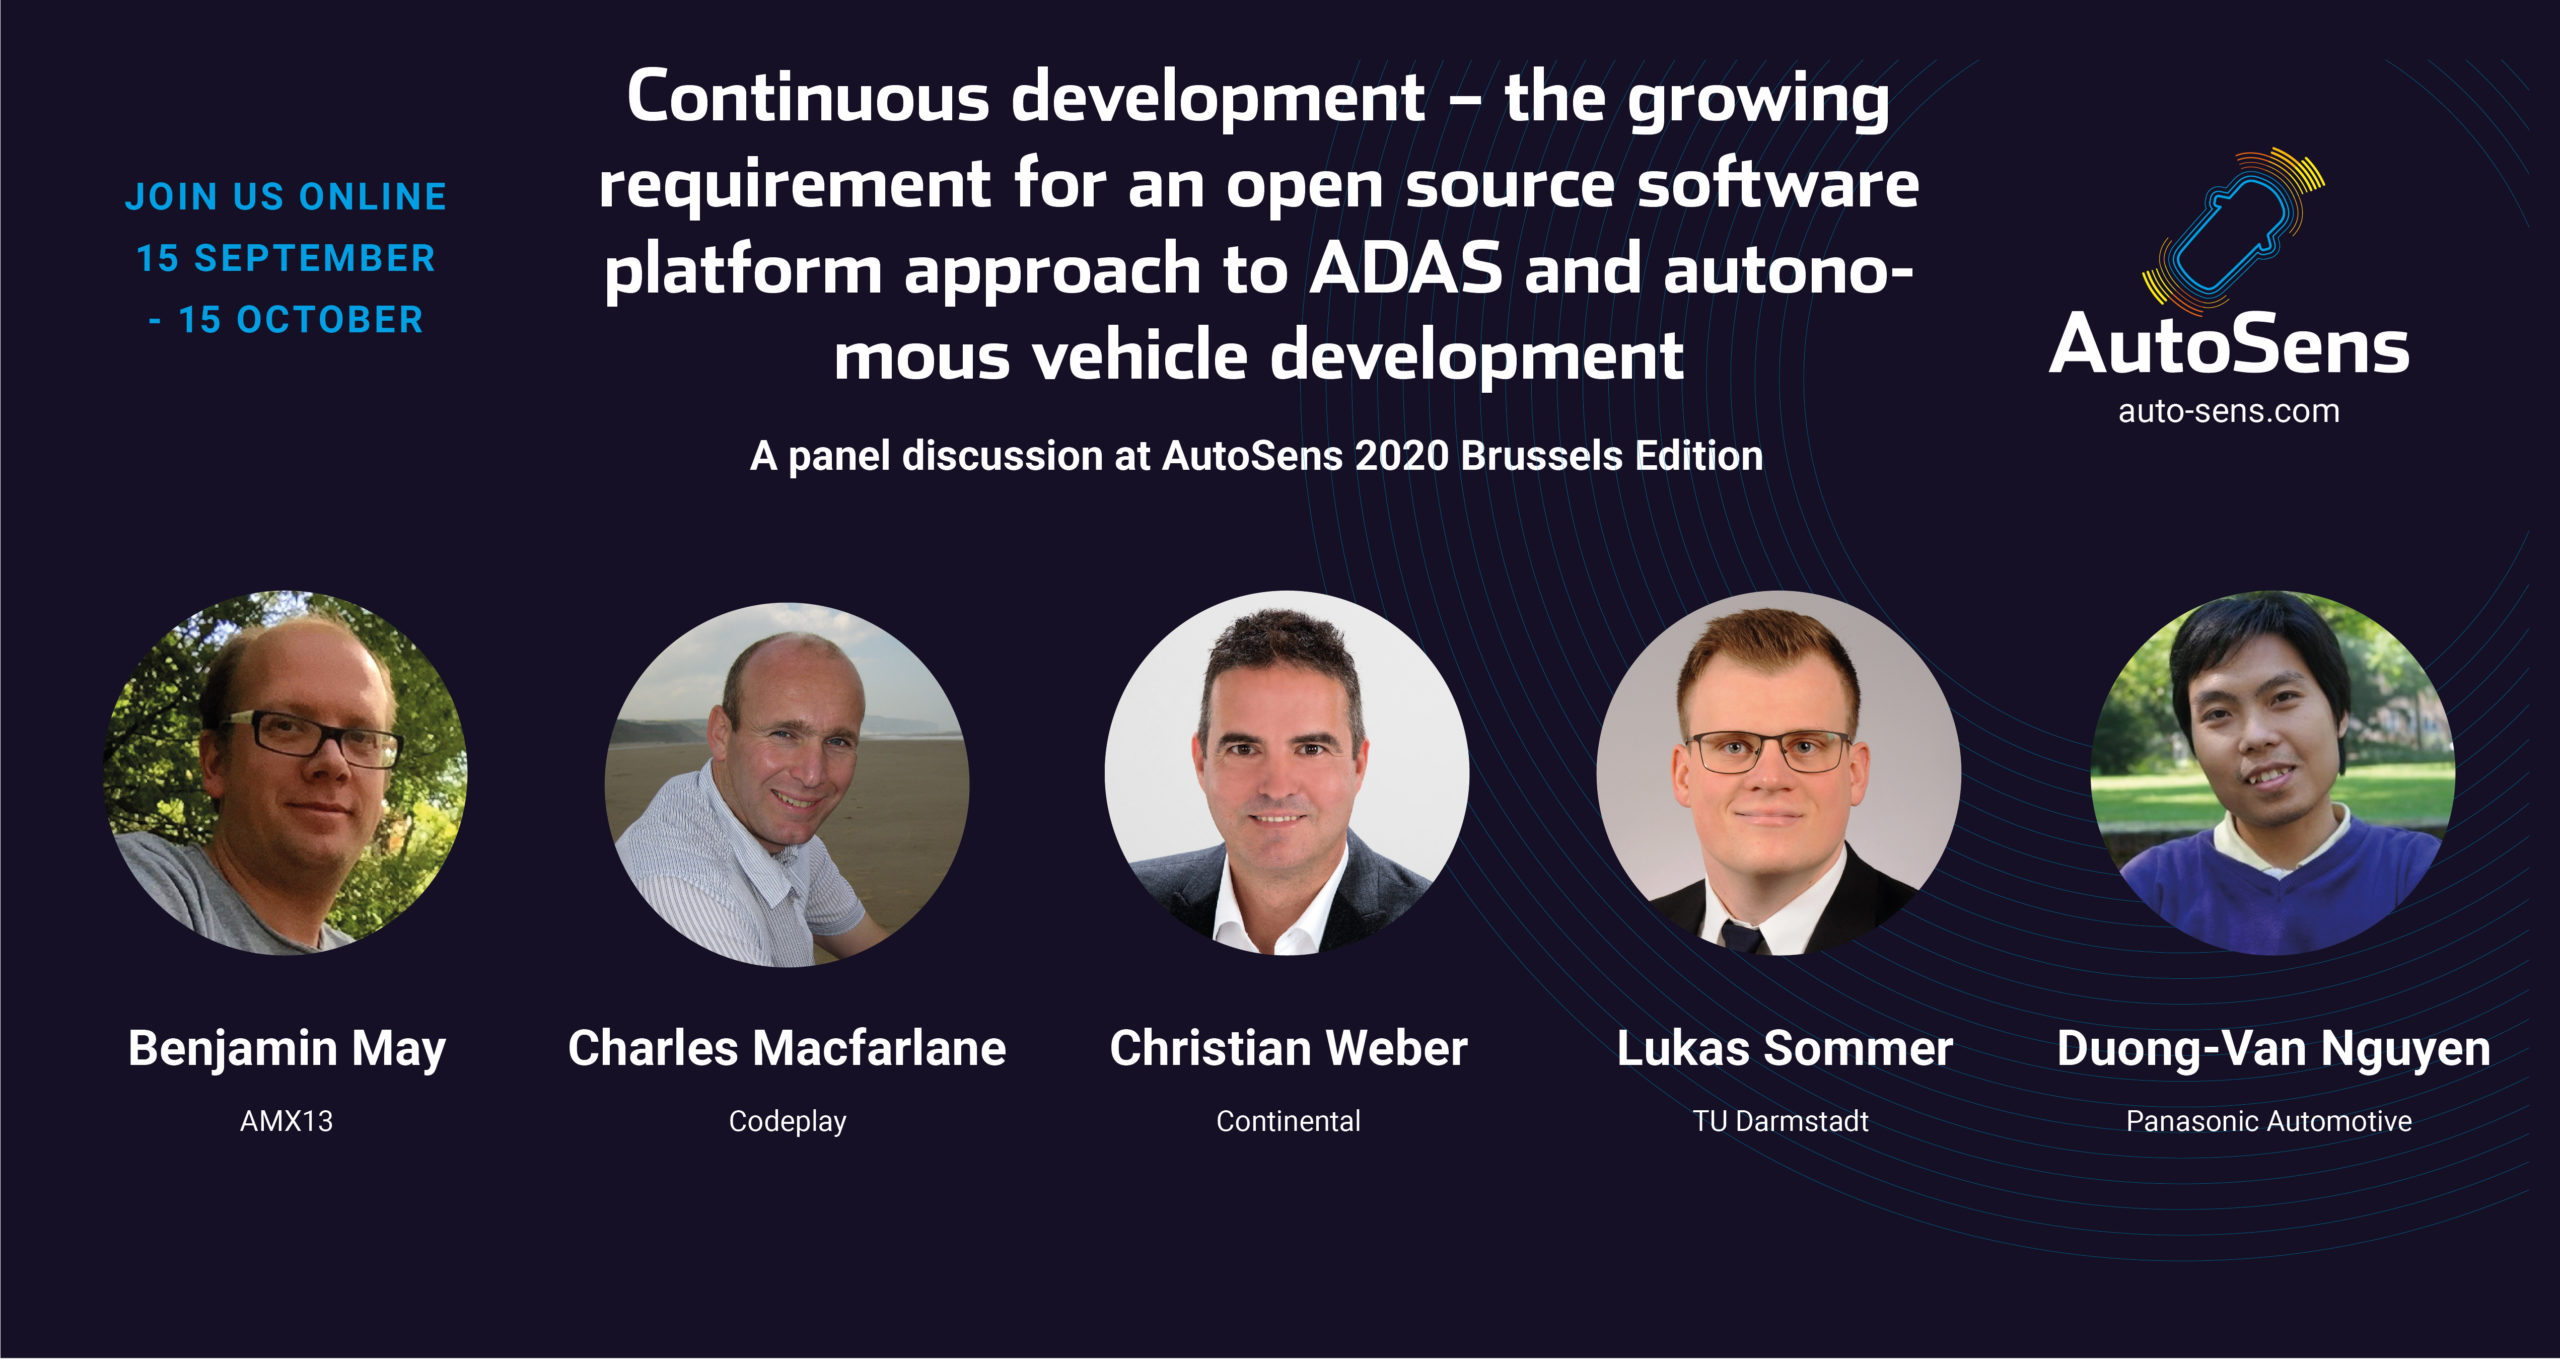 Continuous development – the growing requirement for an open standard software platform approach to ADAS and autonomous vehicle development